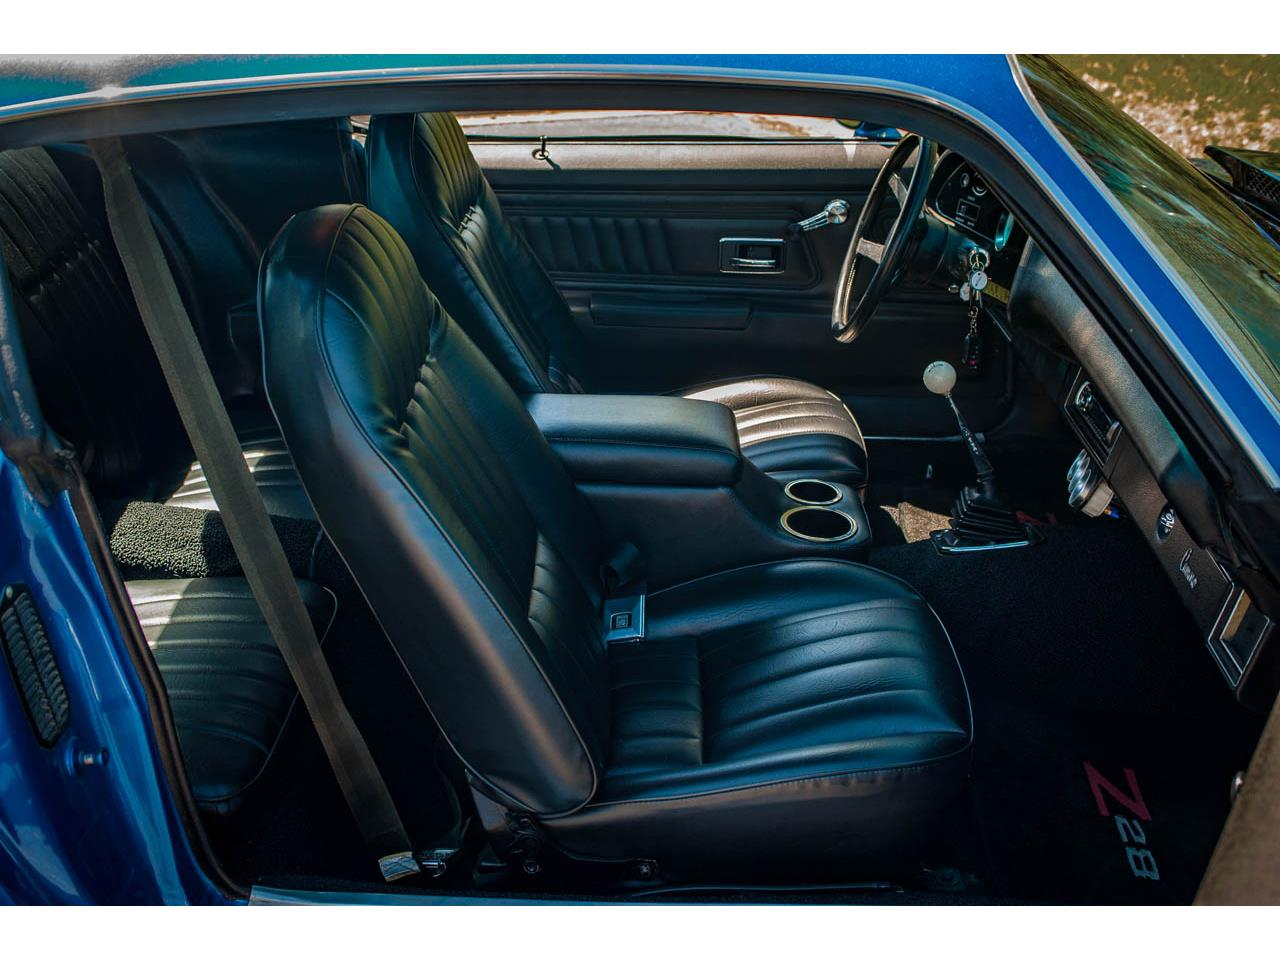 Large Picture of 1971 Chevrolet Camaro located in Illinois Offered by Gateway Classic Cars - St. Louis - QB8S